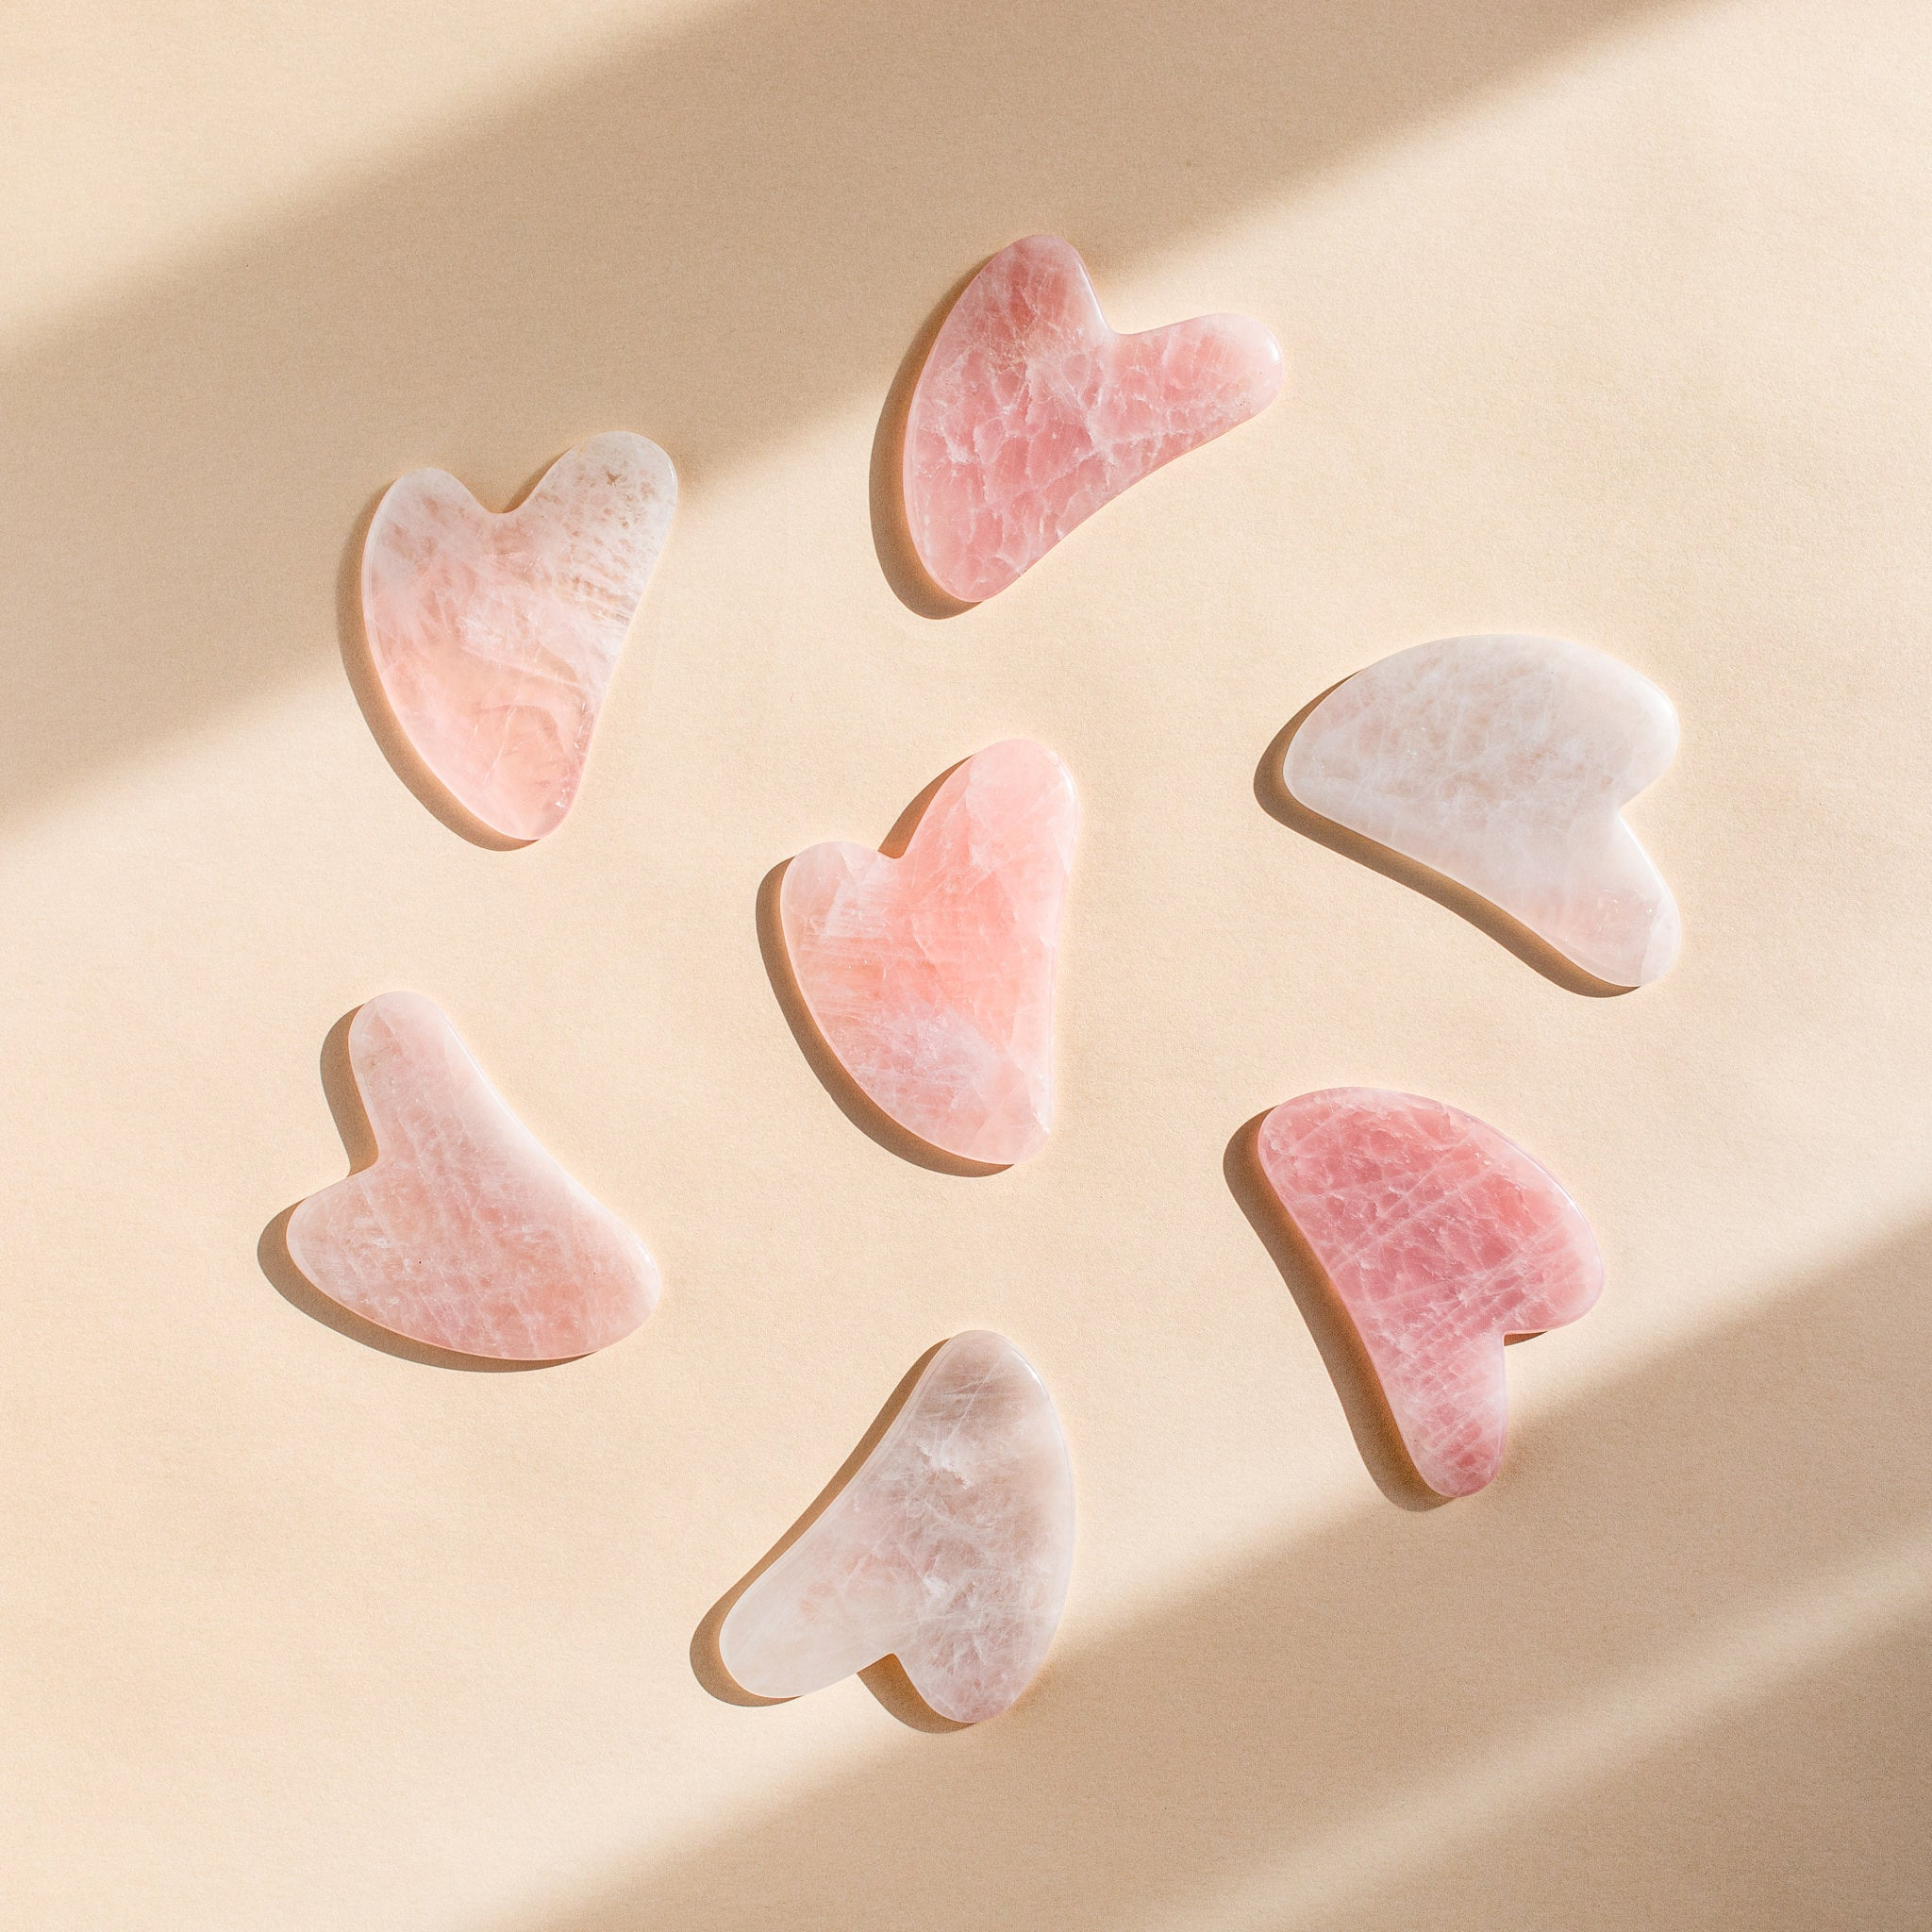 Image of rose quartz hand crafted gua sha tools in a circle.